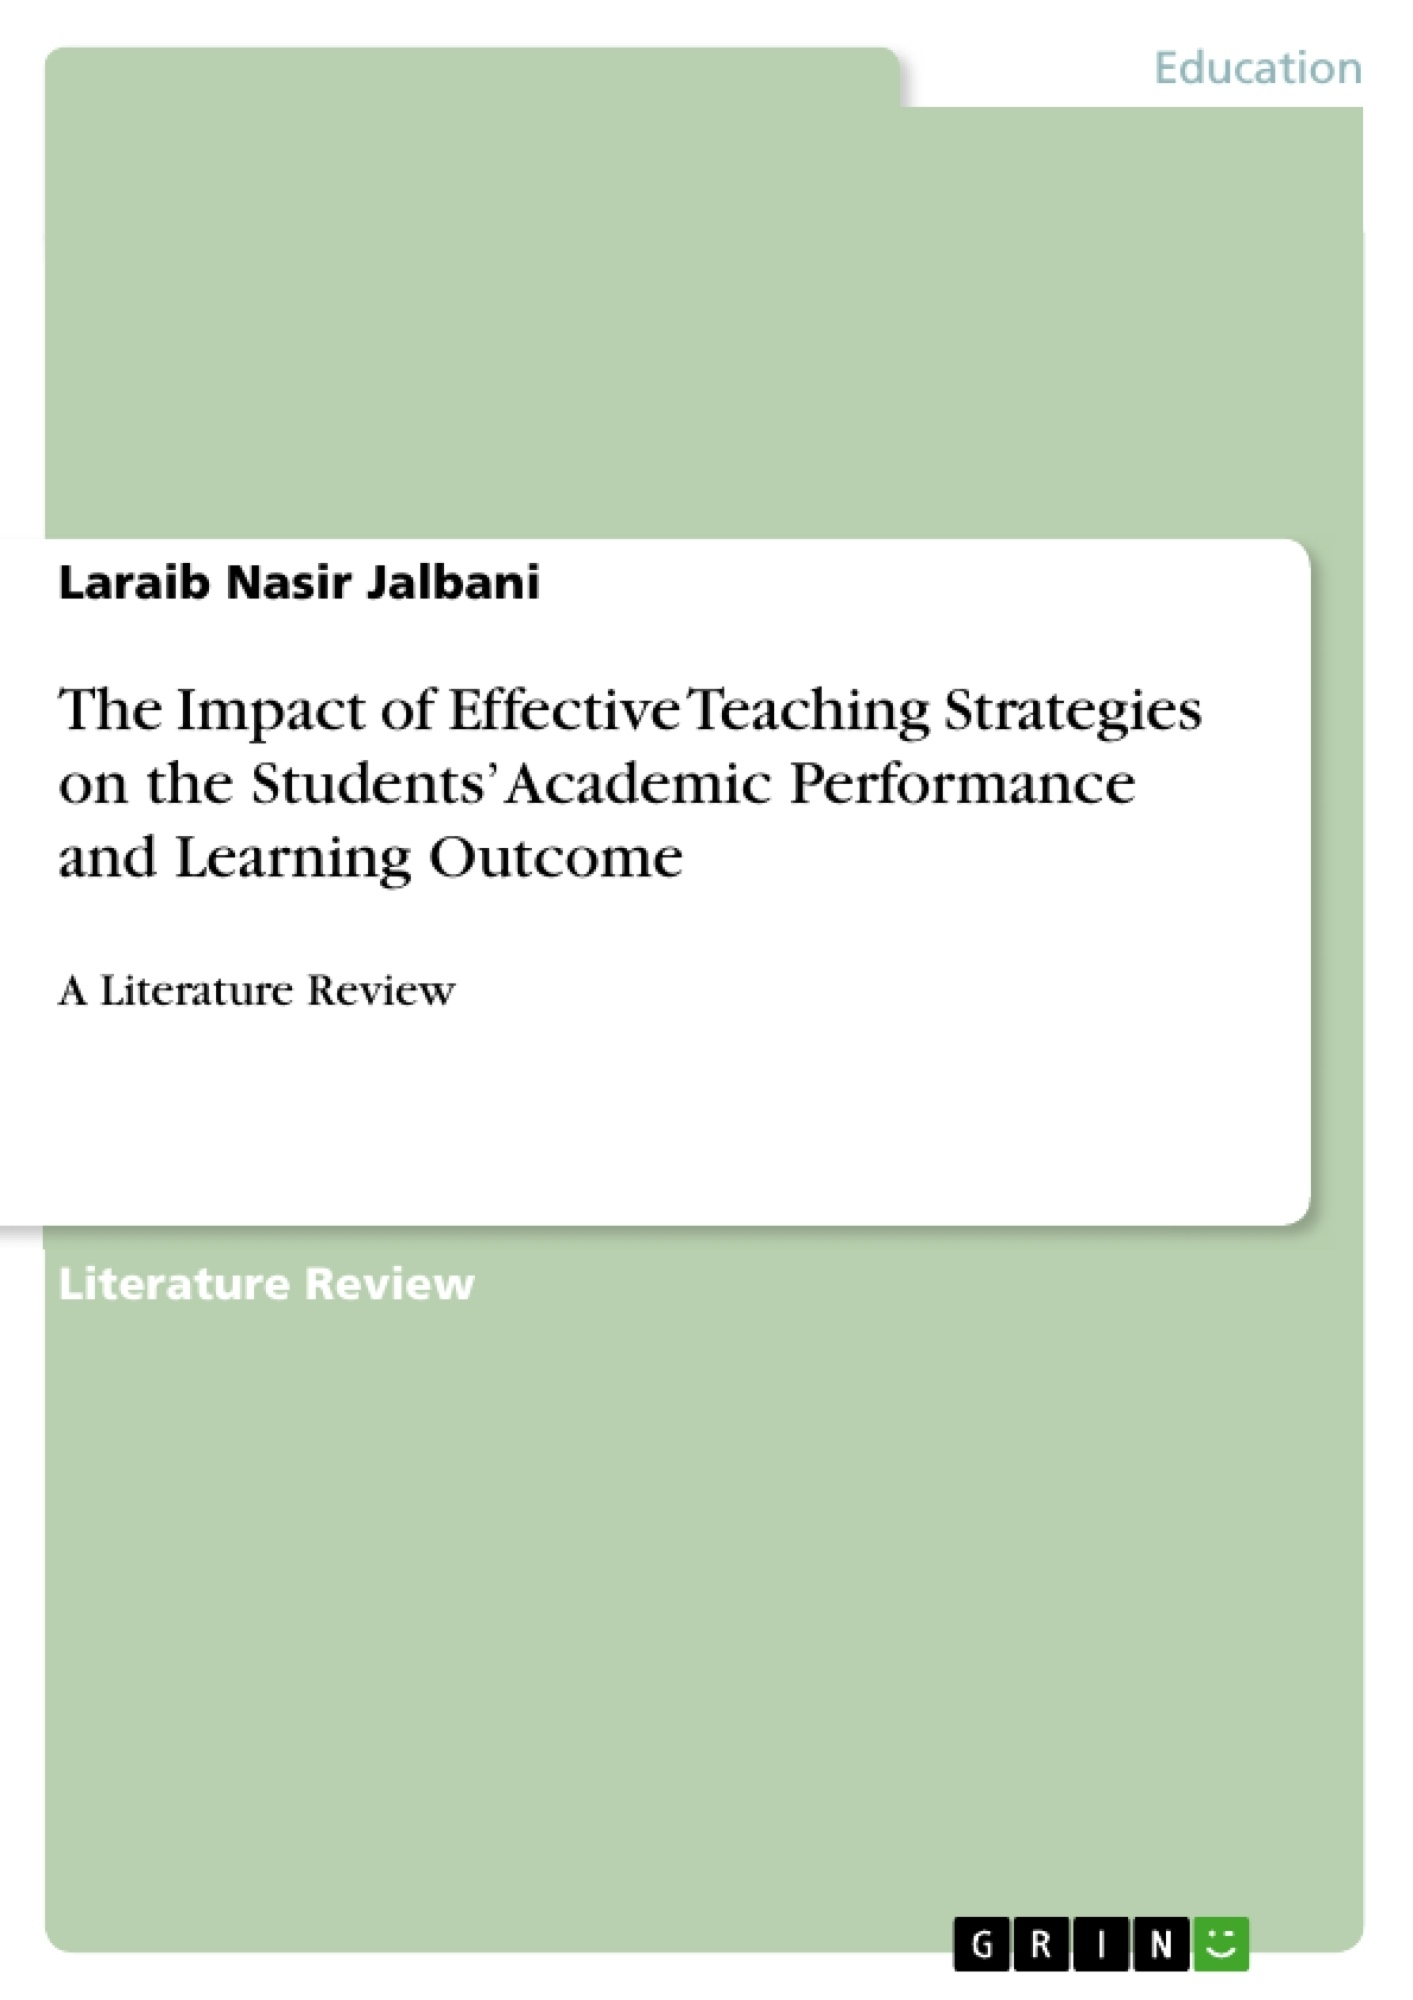 Digital literacy literature review